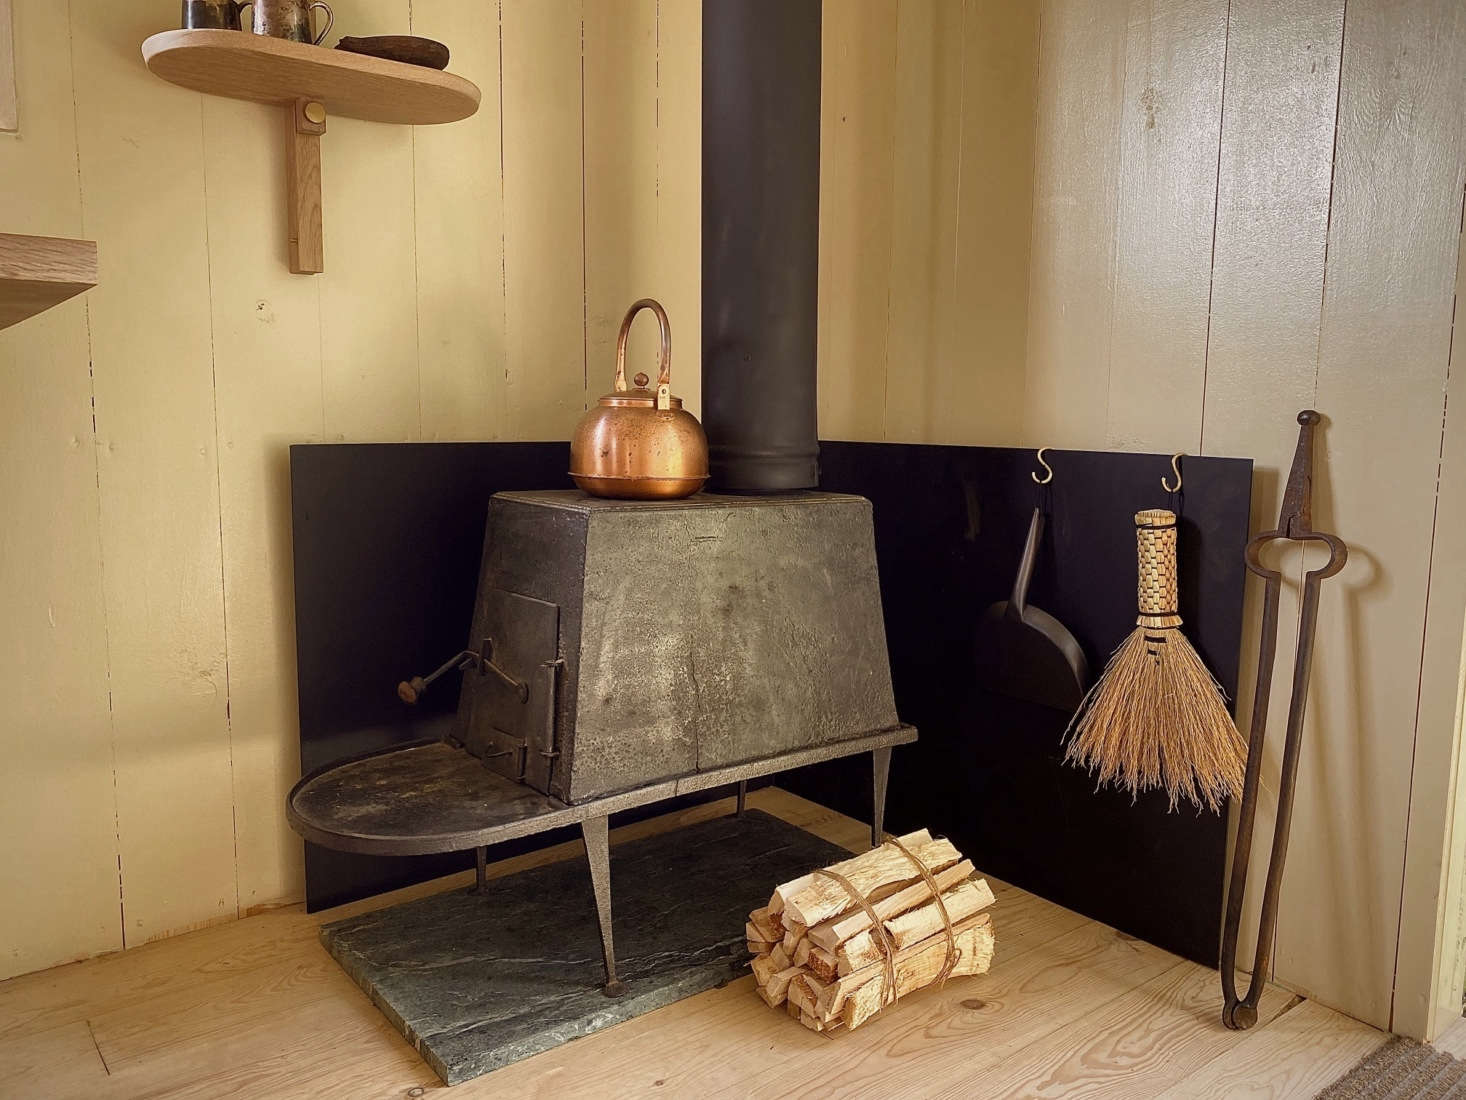 A wood-burning stove stands next to the entry. The Shaker-inspired wall shelf is a Hallgeir Homstvedt design for Mjölk known as the Doverail.